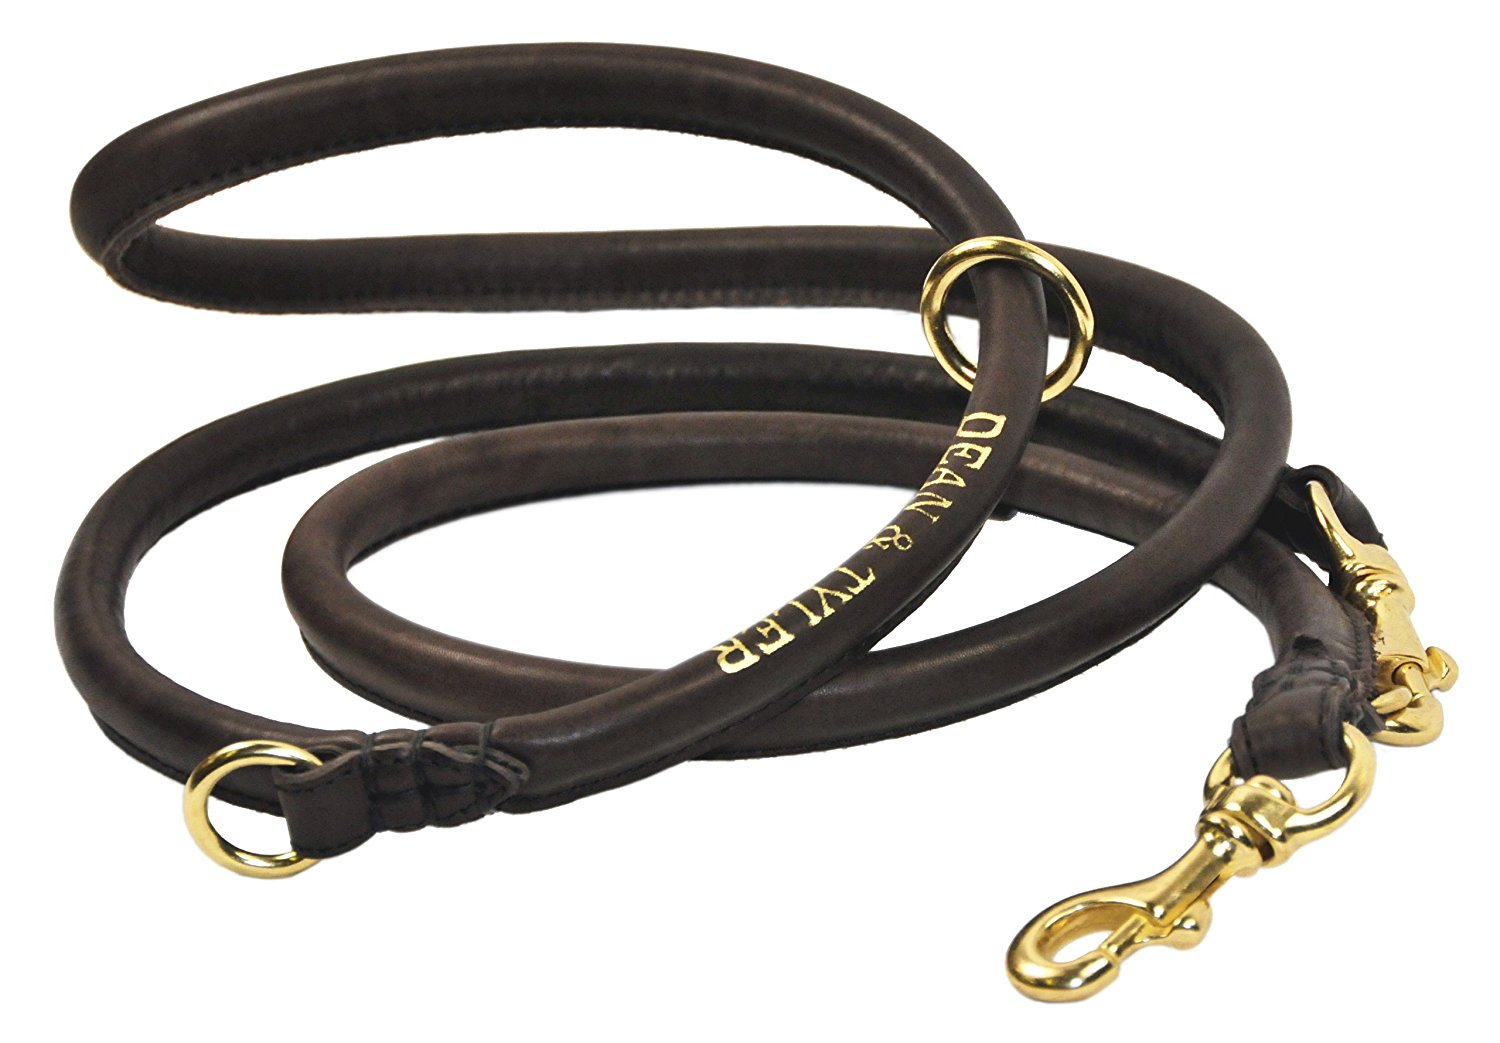 Dean & Tyler Noburu Dog Leash